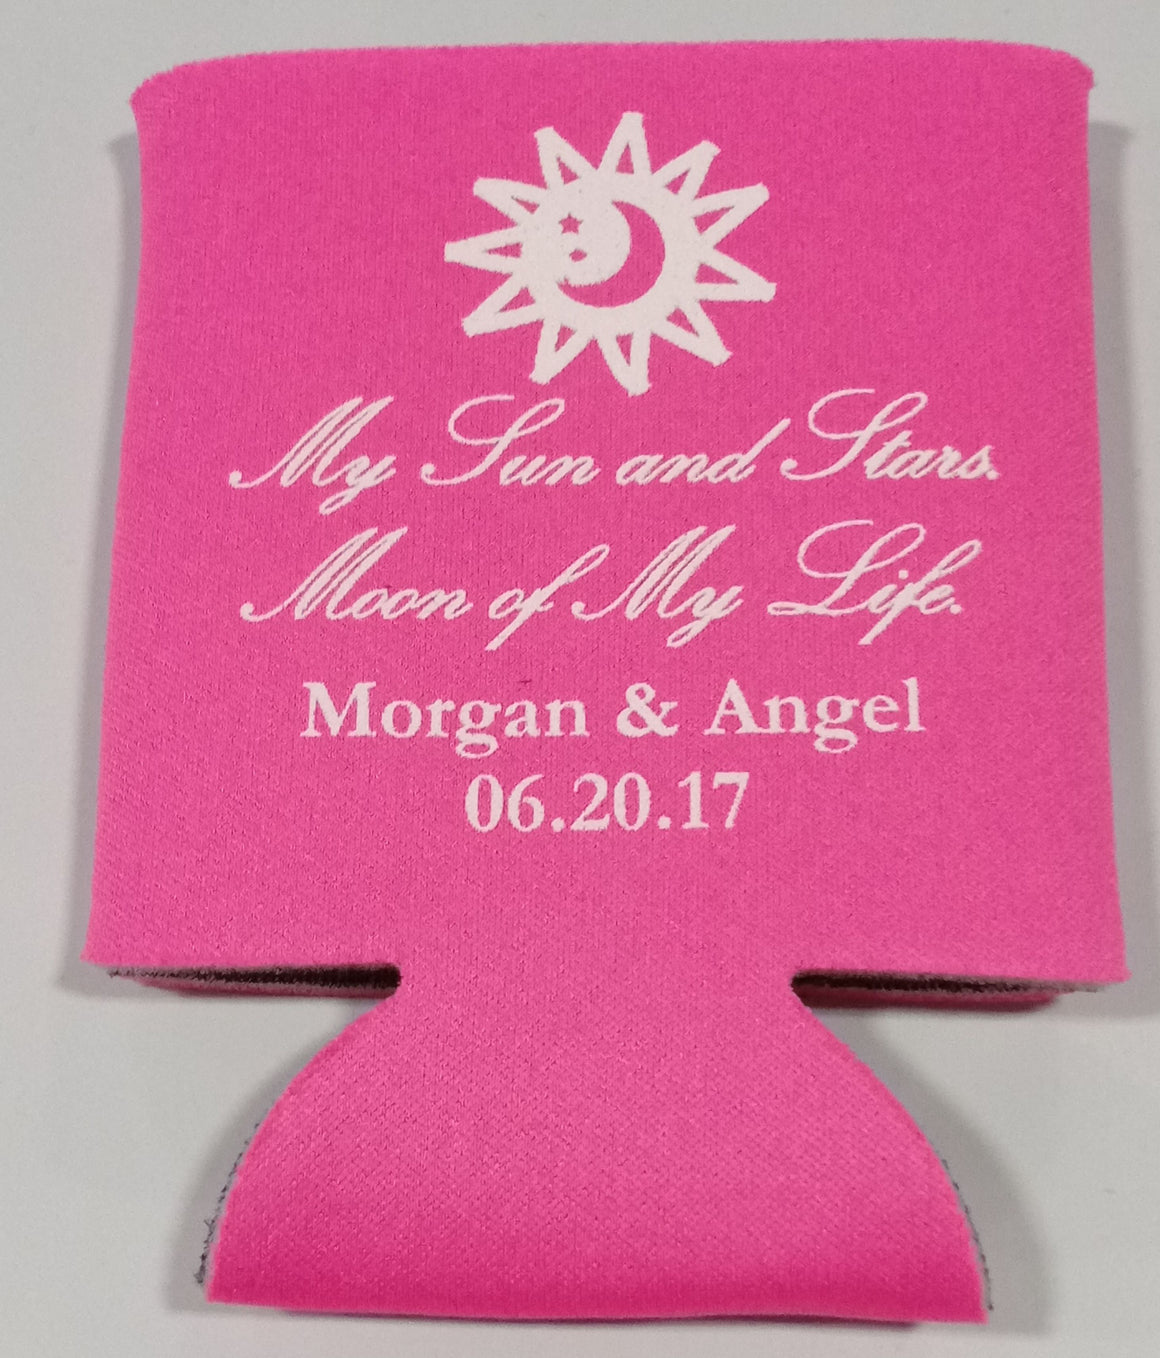 Game of thrones Wedding koozies moon of my life